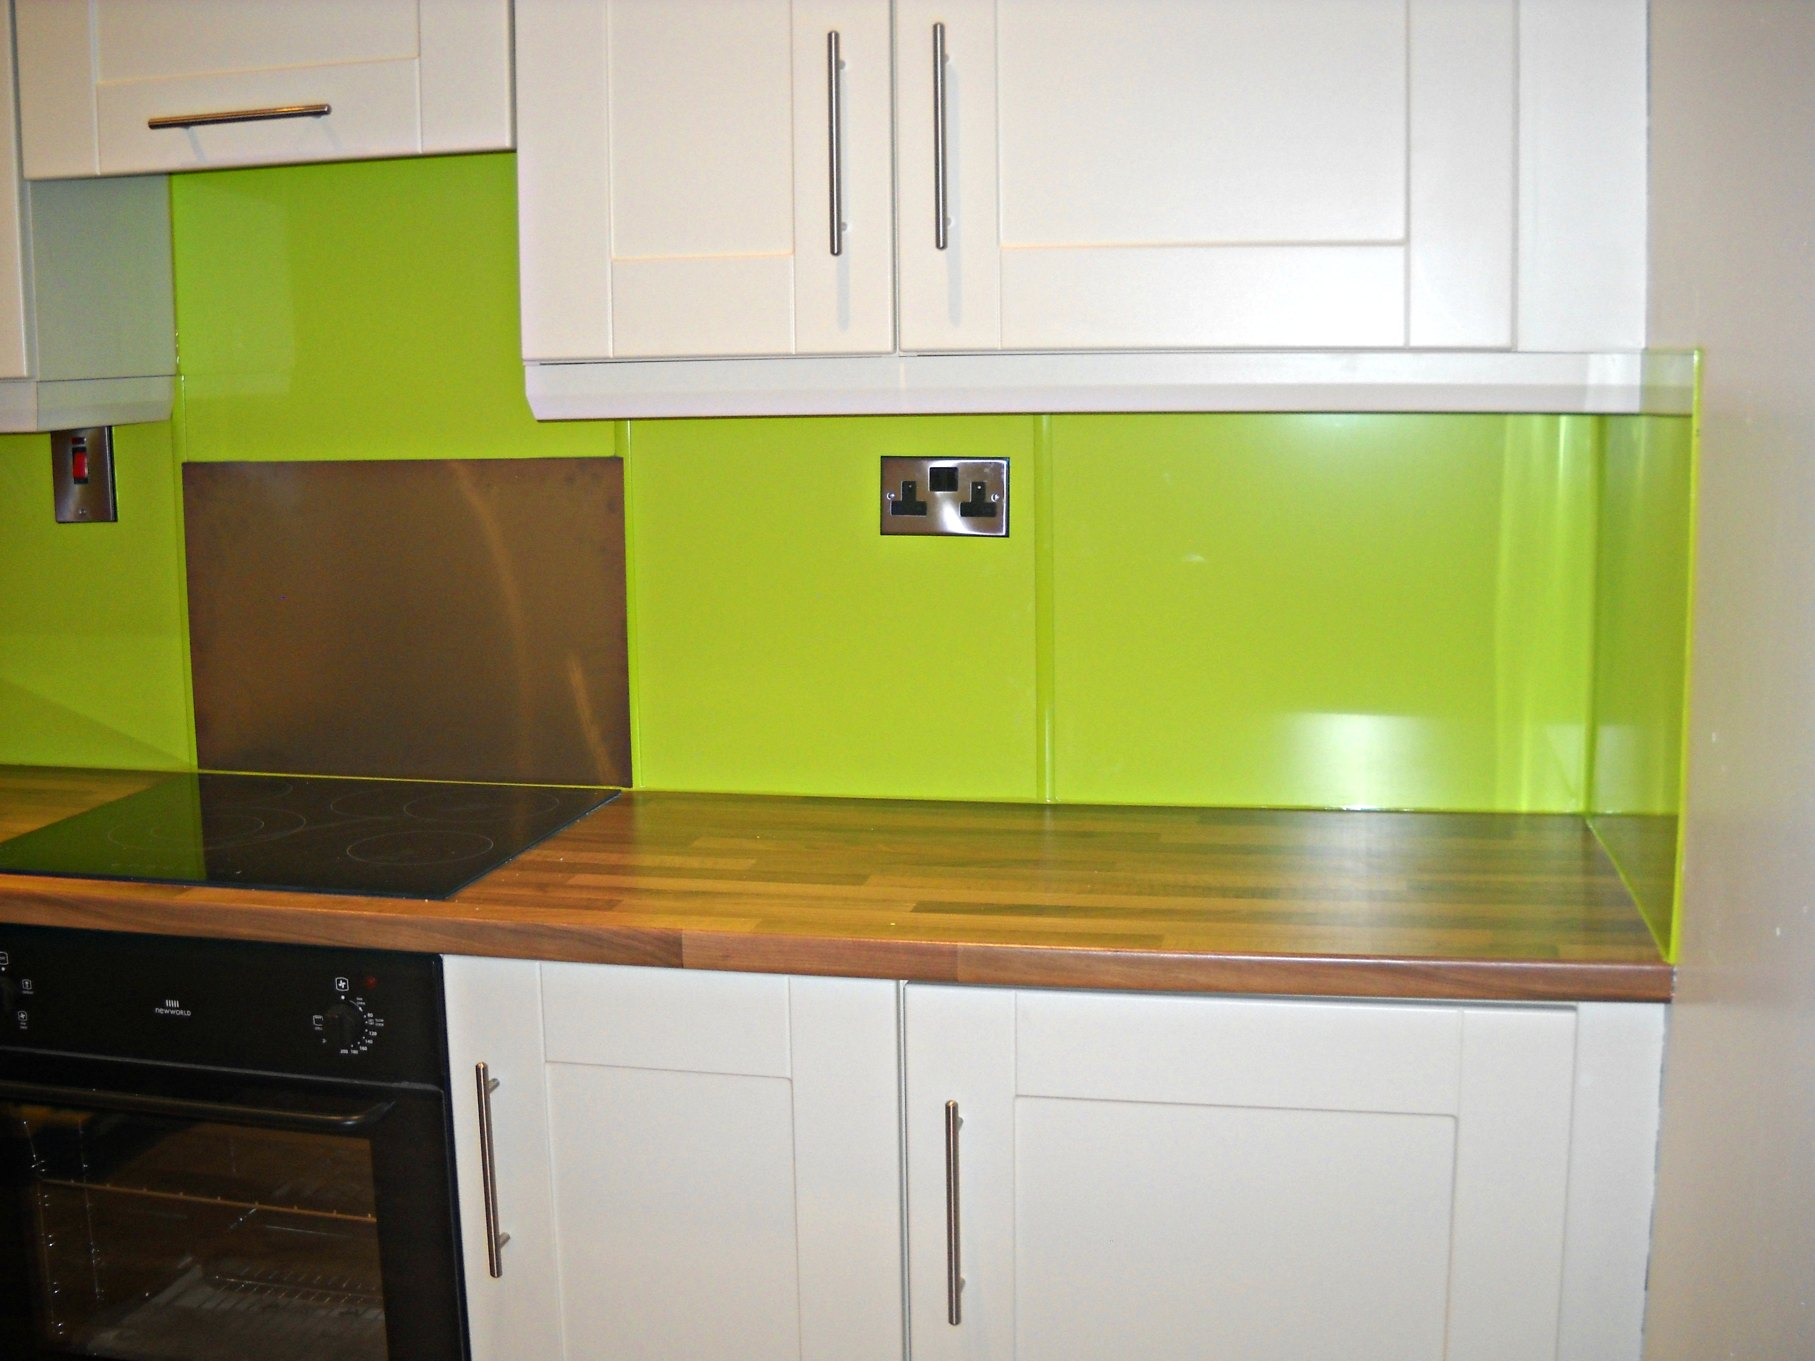 Colour Pvc Kitchen Cladding Enviroclad Hygienic Amp Decorative Pvc Cladding Panels Sheets